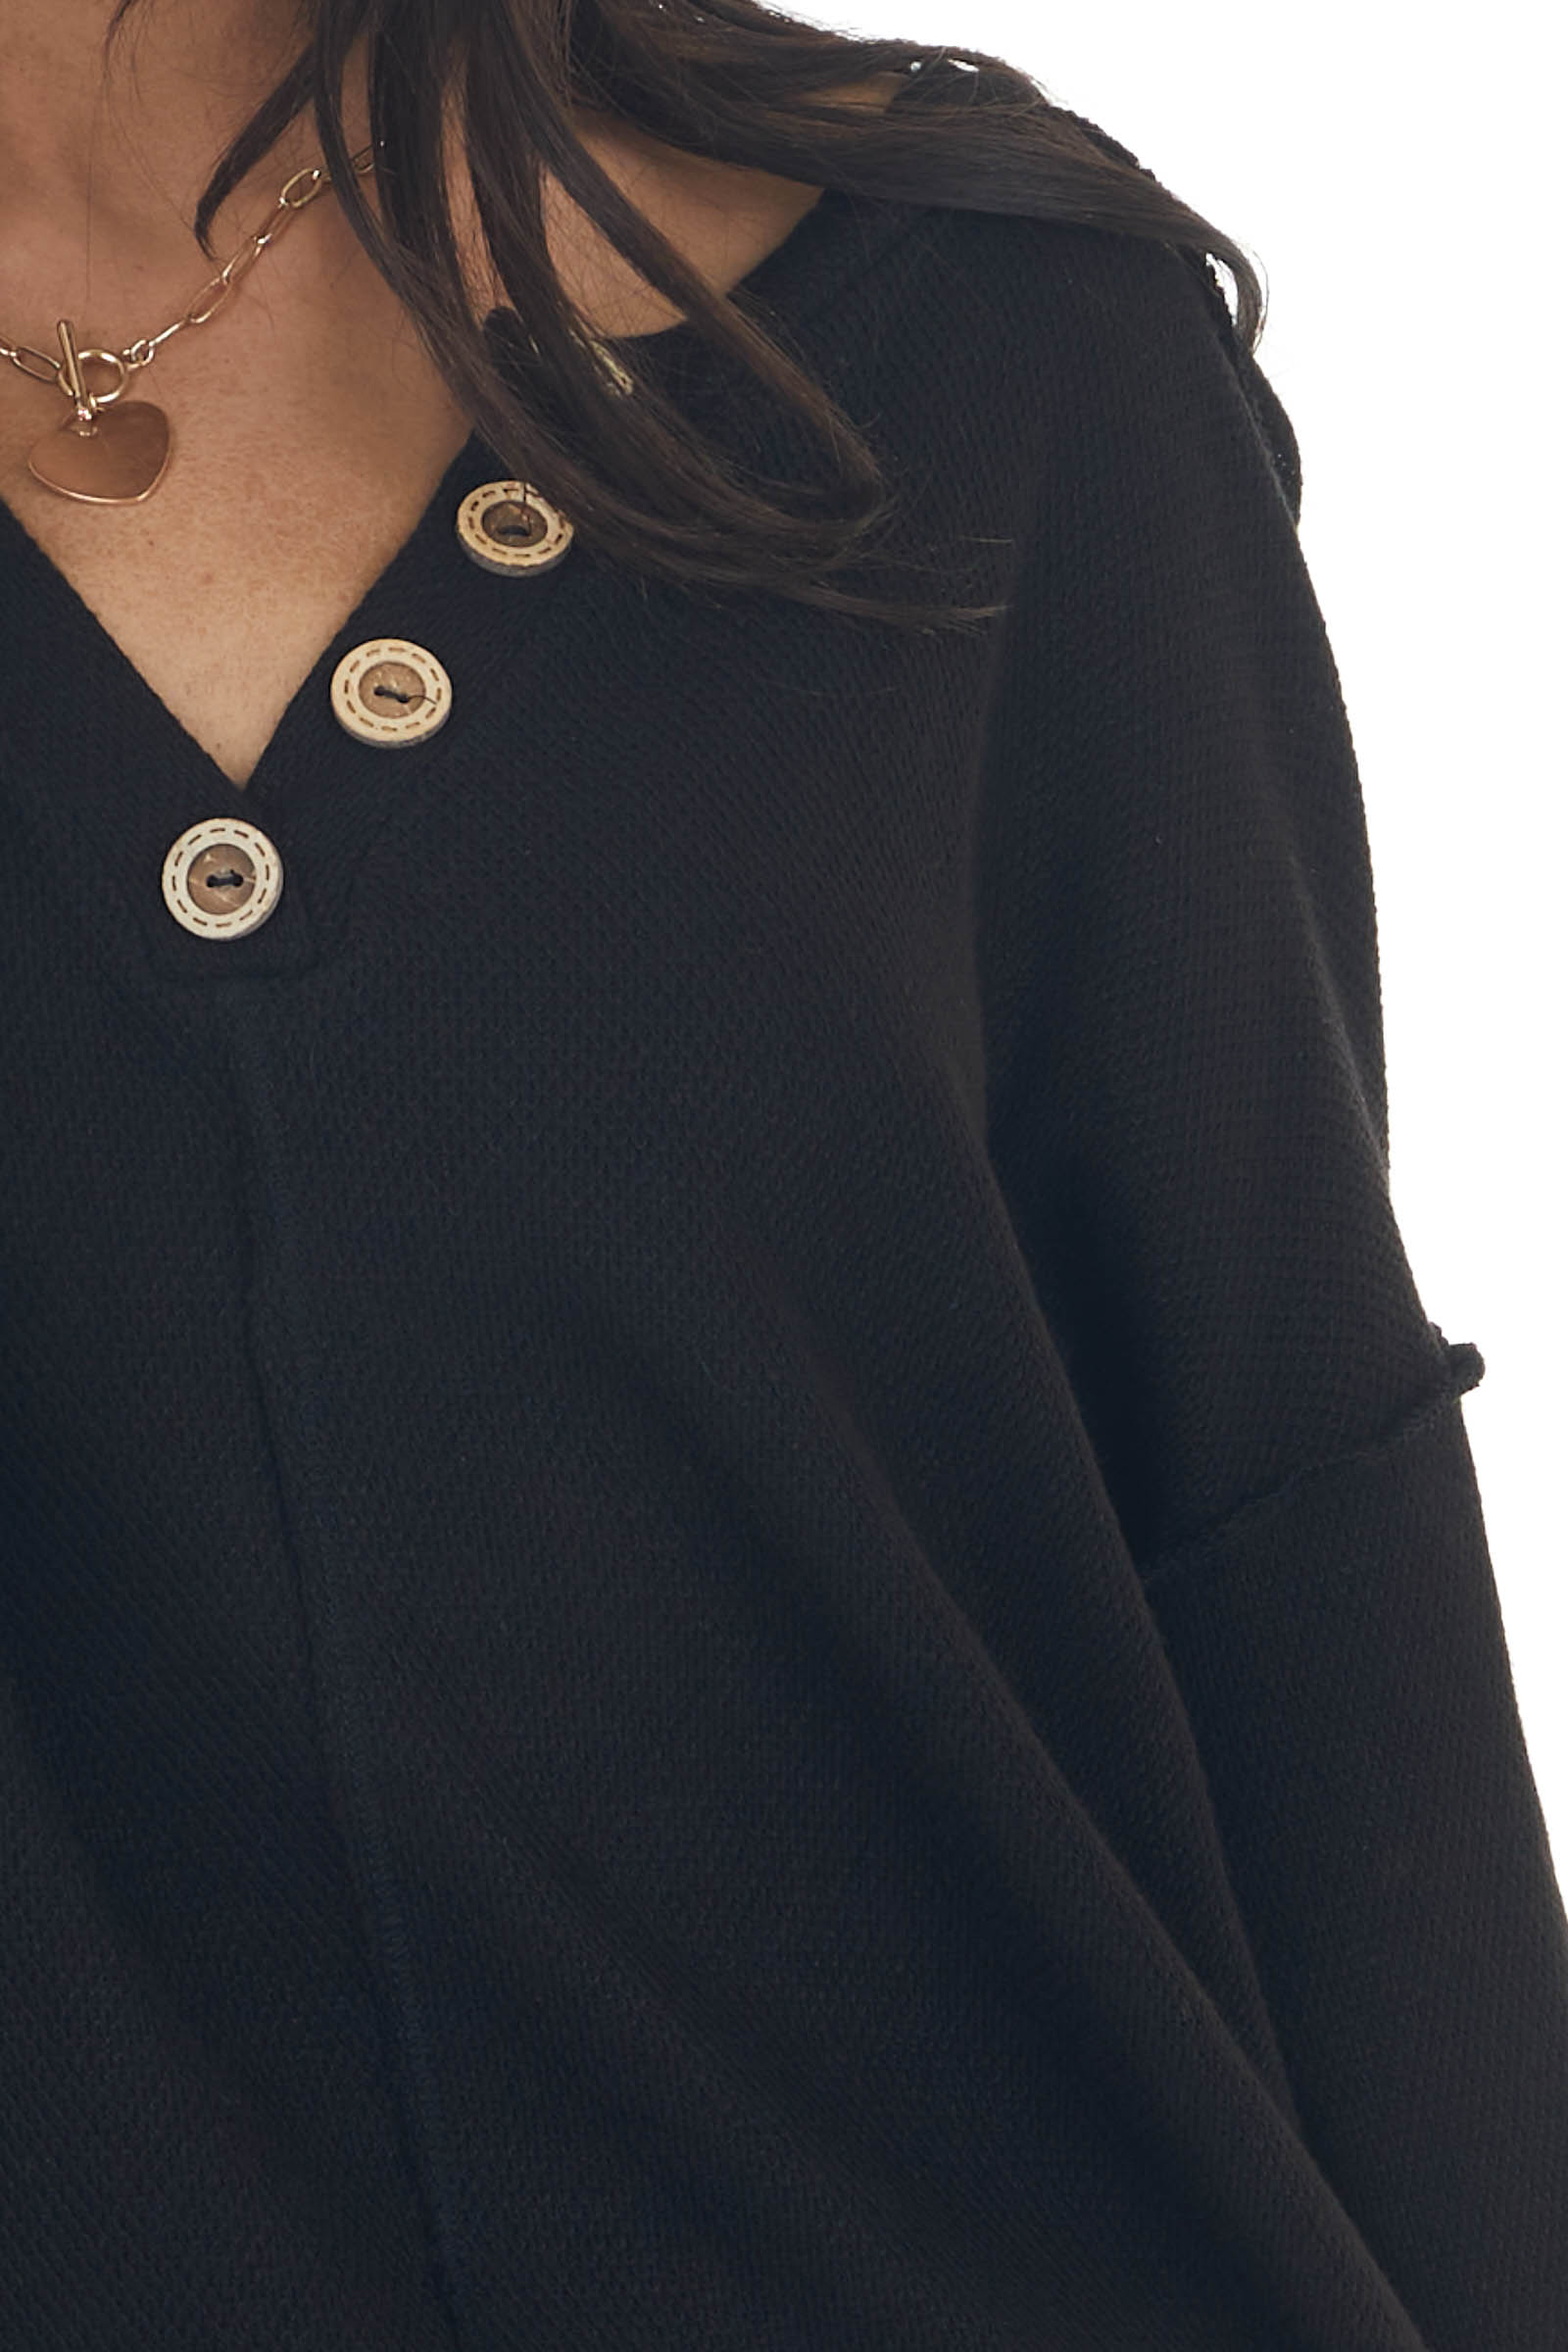 Black Henley Top with Reversed Seam Details